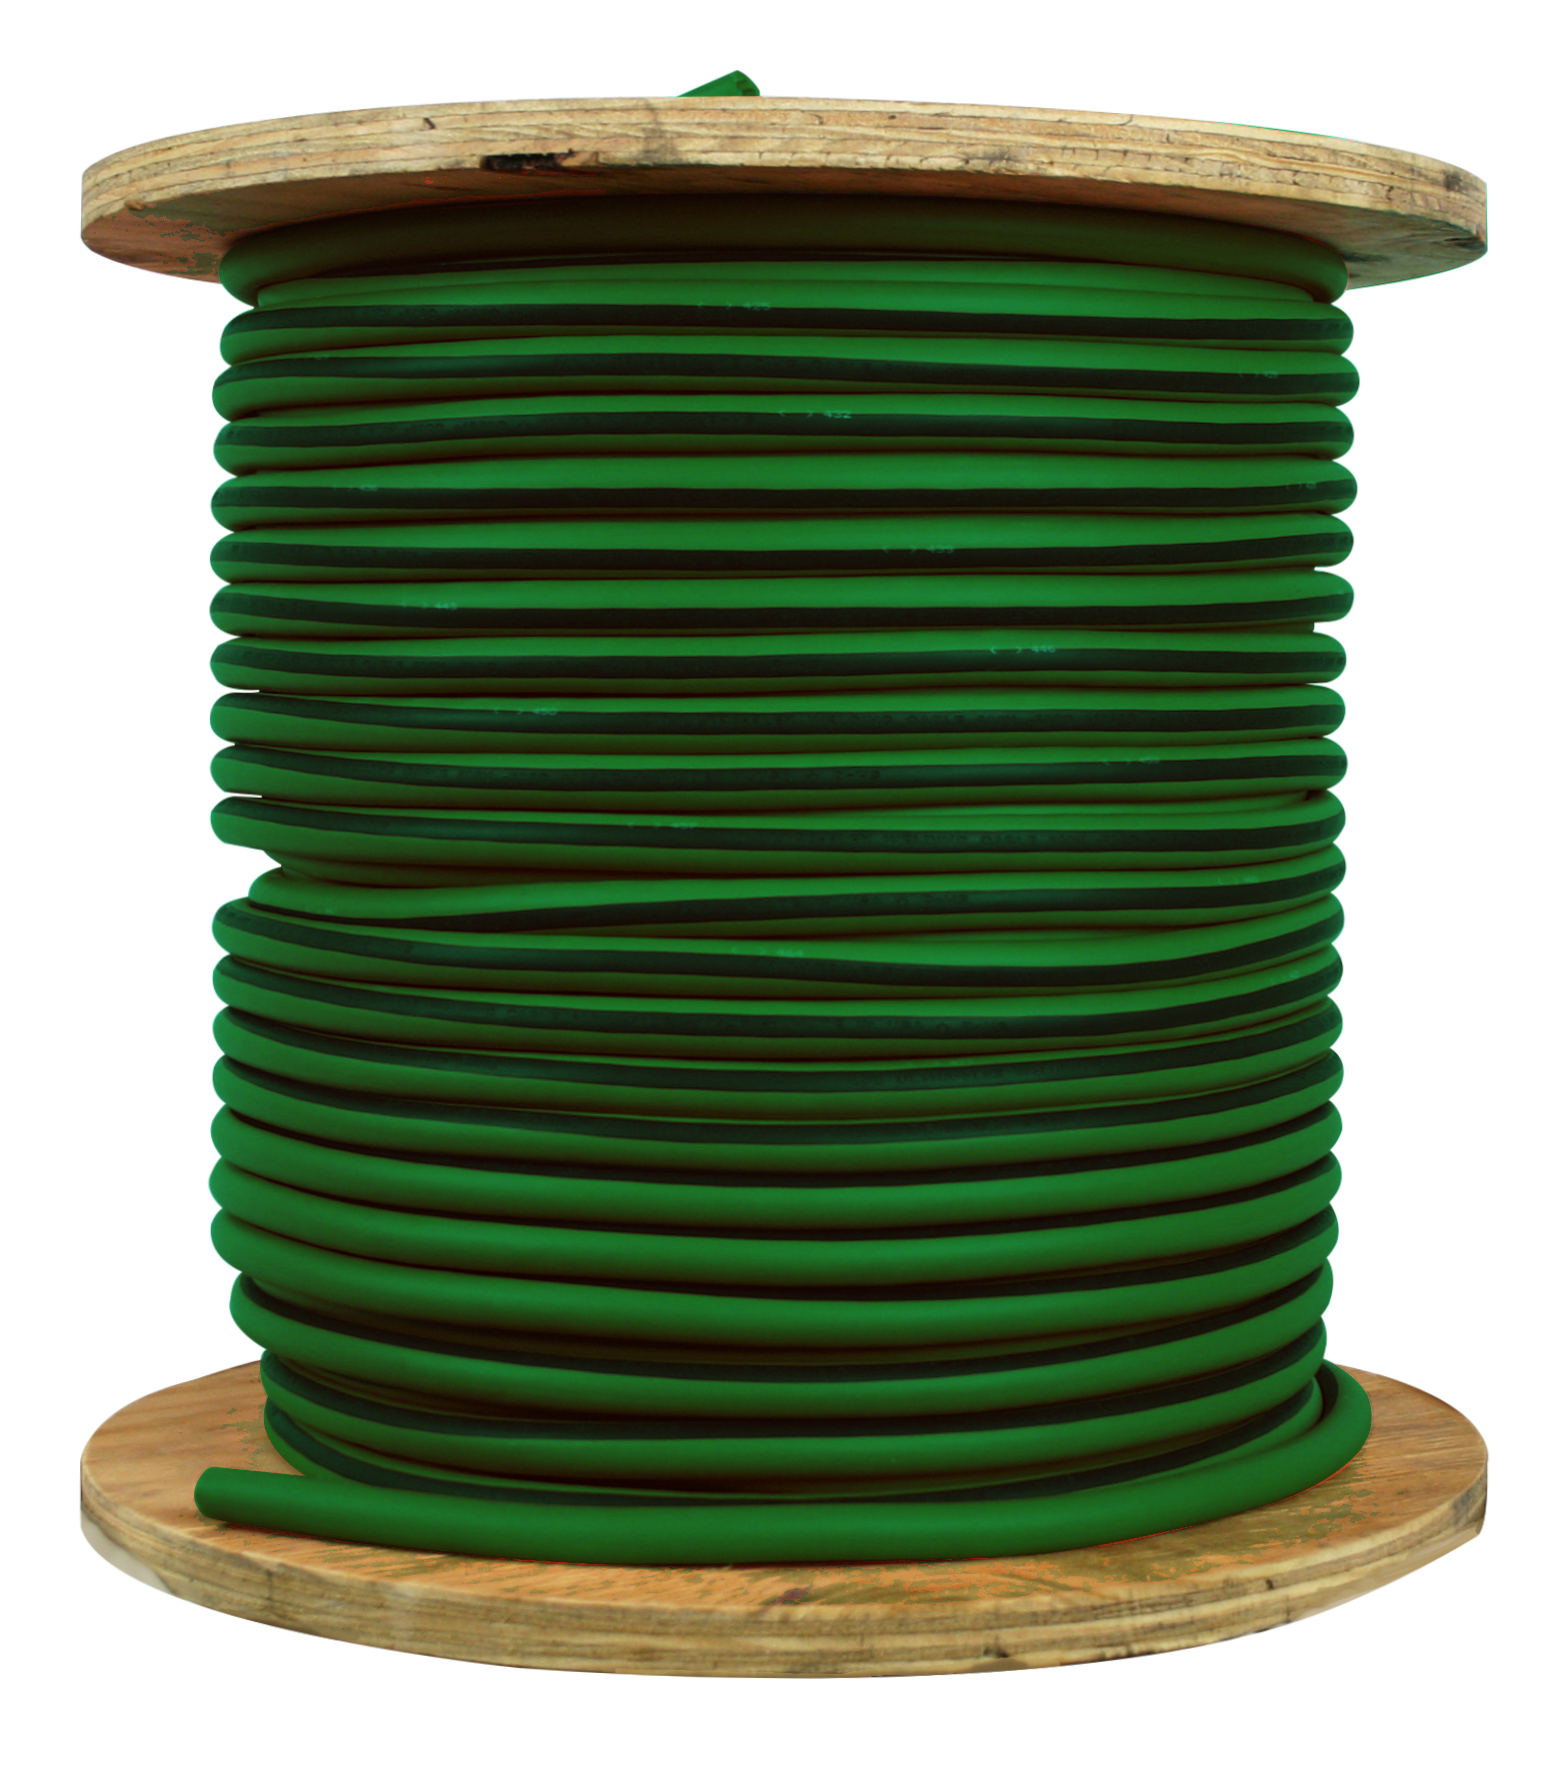 2017-03-28 11.10.27_Green.png